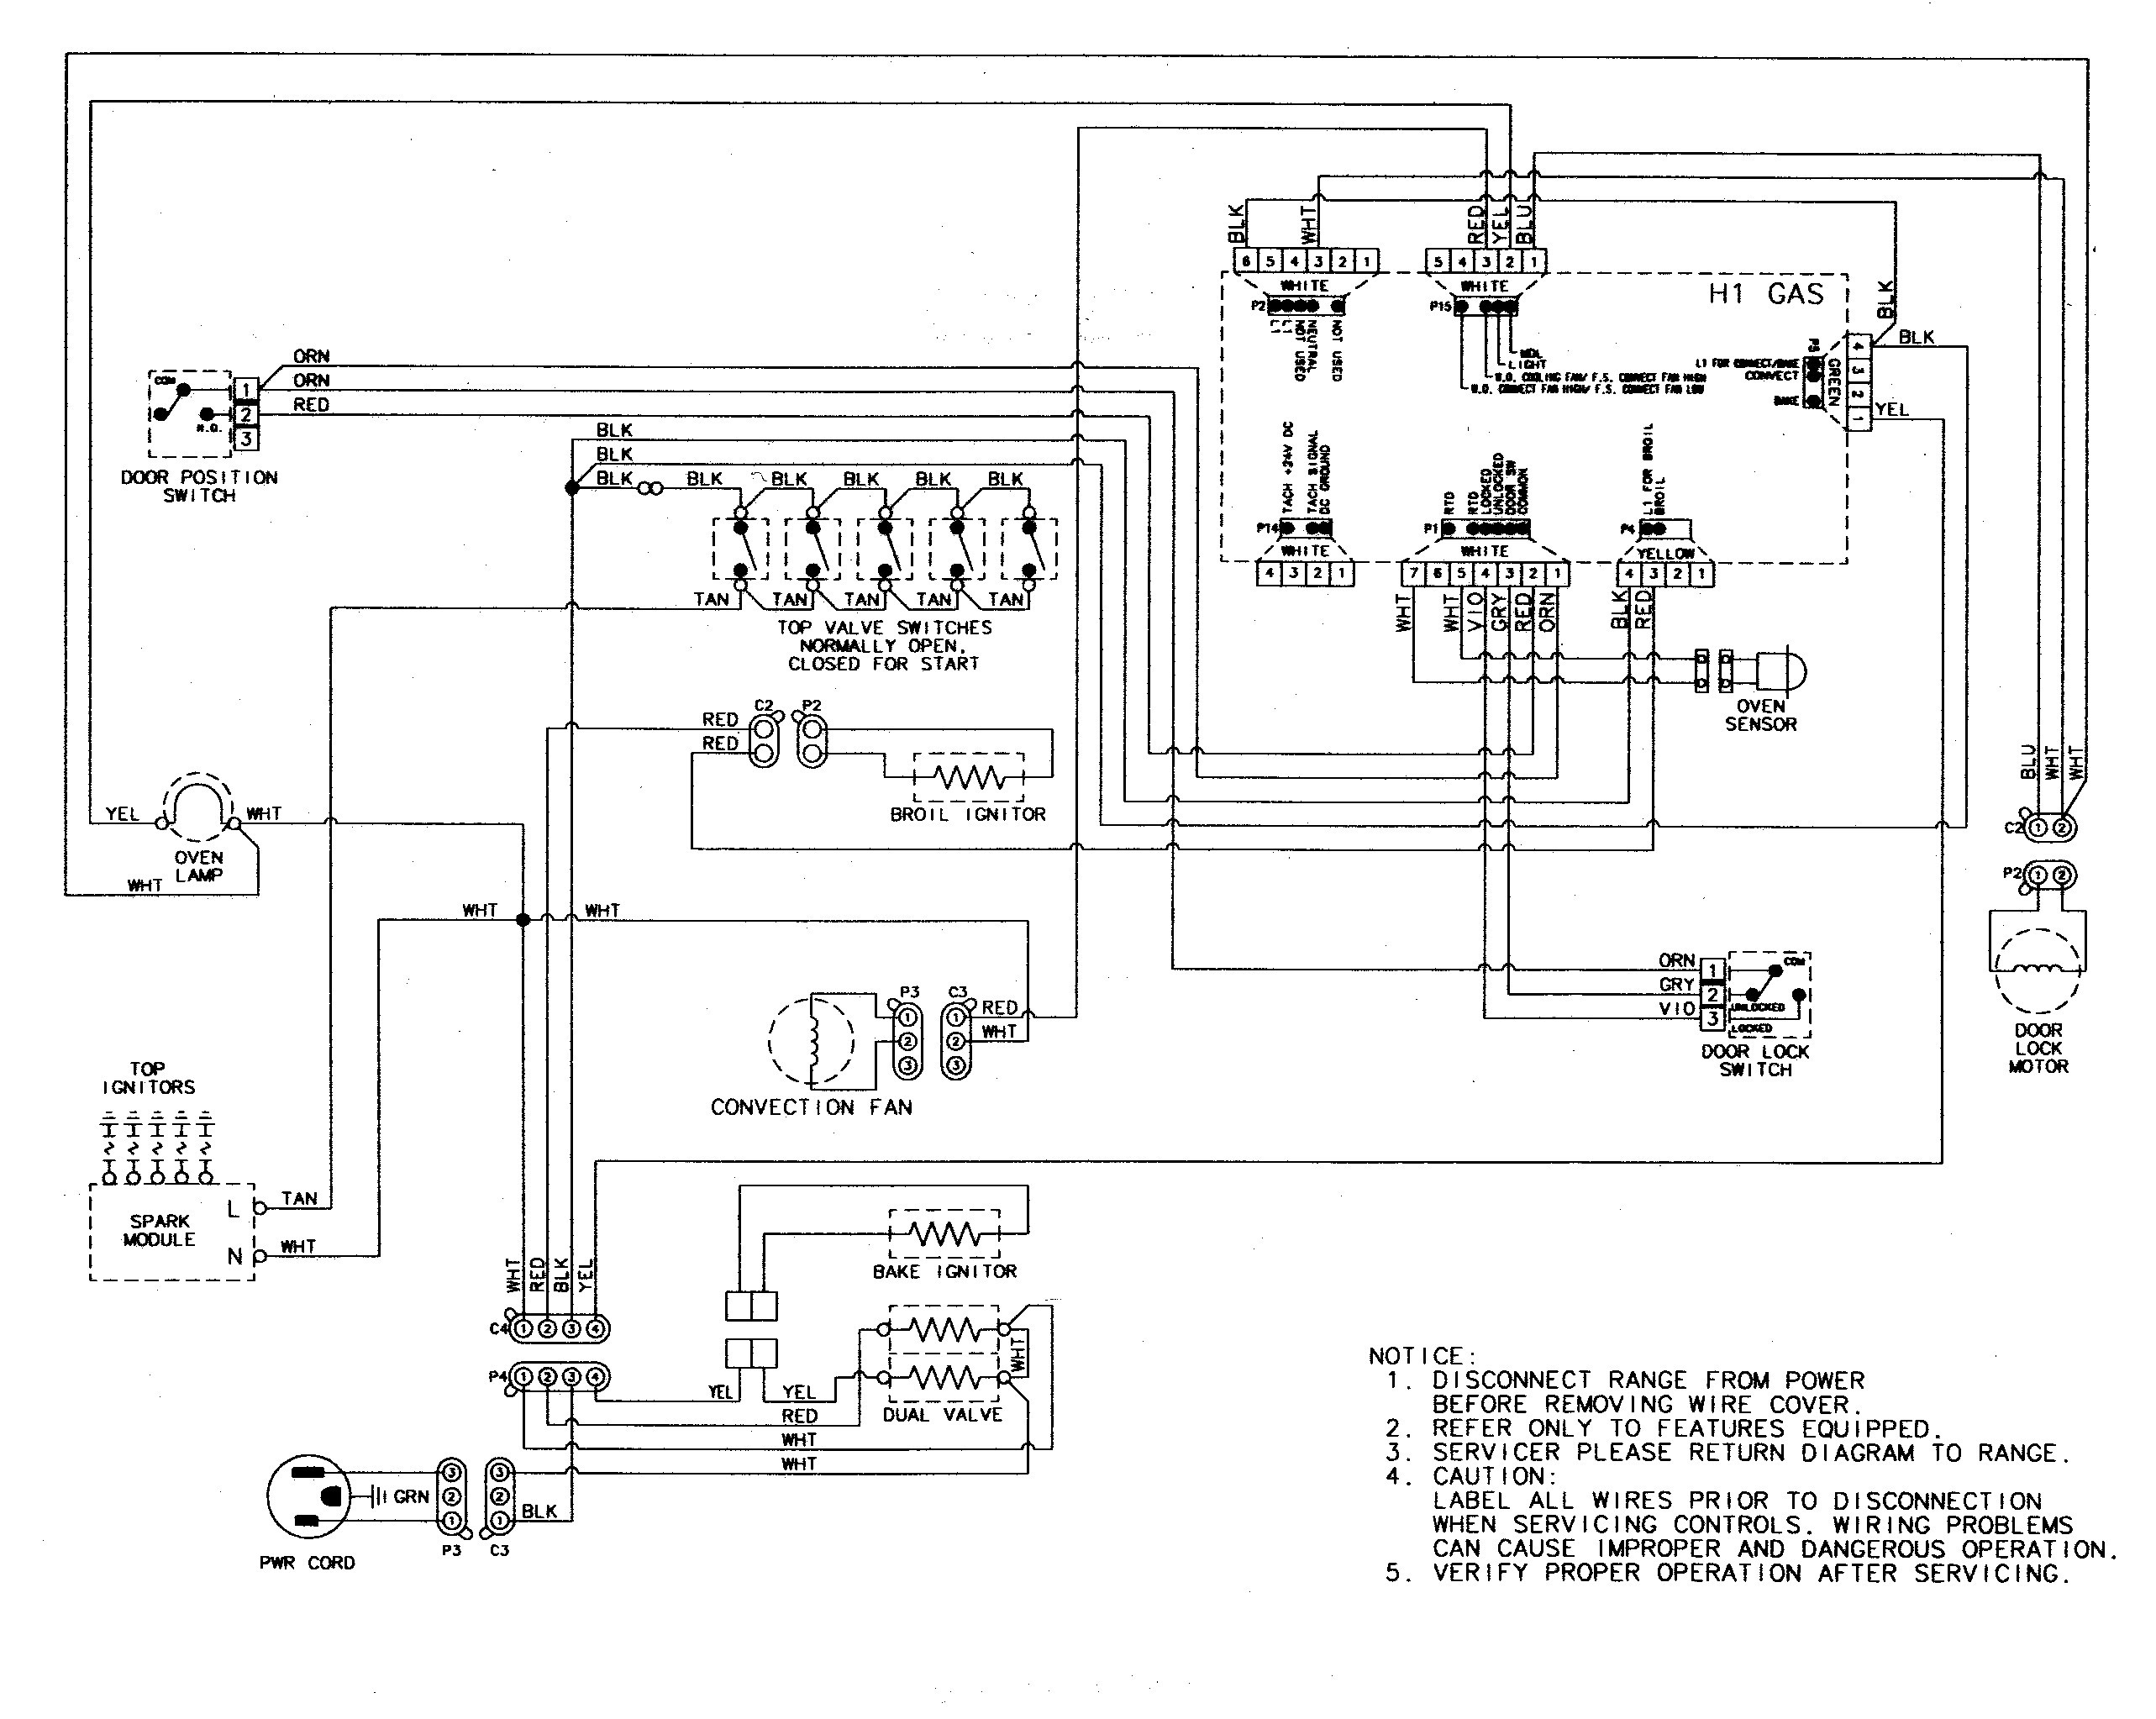 [DVZP_7254]   Hotpoint Motor Wiring Diagram - 2005 Chrysler Pt Cruiser Wiring Diagrams  for Wiring Diagram Schematics | Hotpoint Dishwasher Wiring Diagram |  | Wiring Diagram Schematics